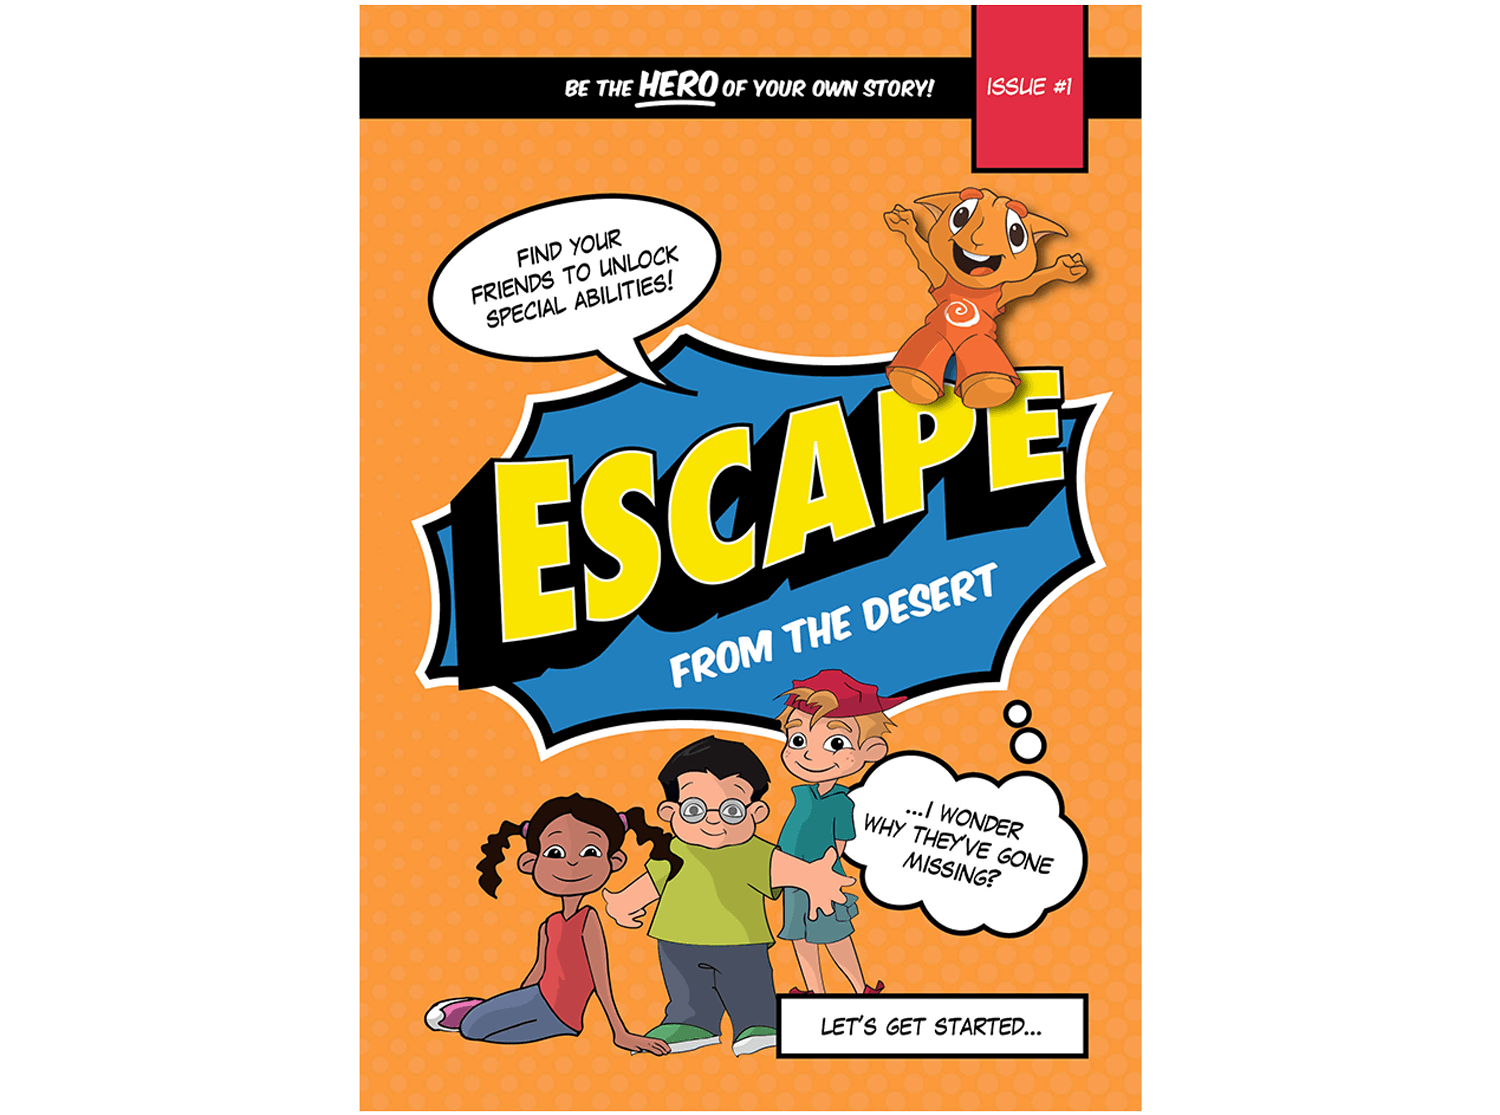 Front cover of Escape from the Desert - A children's book developed by Amergin in collaboration with Uniting Care